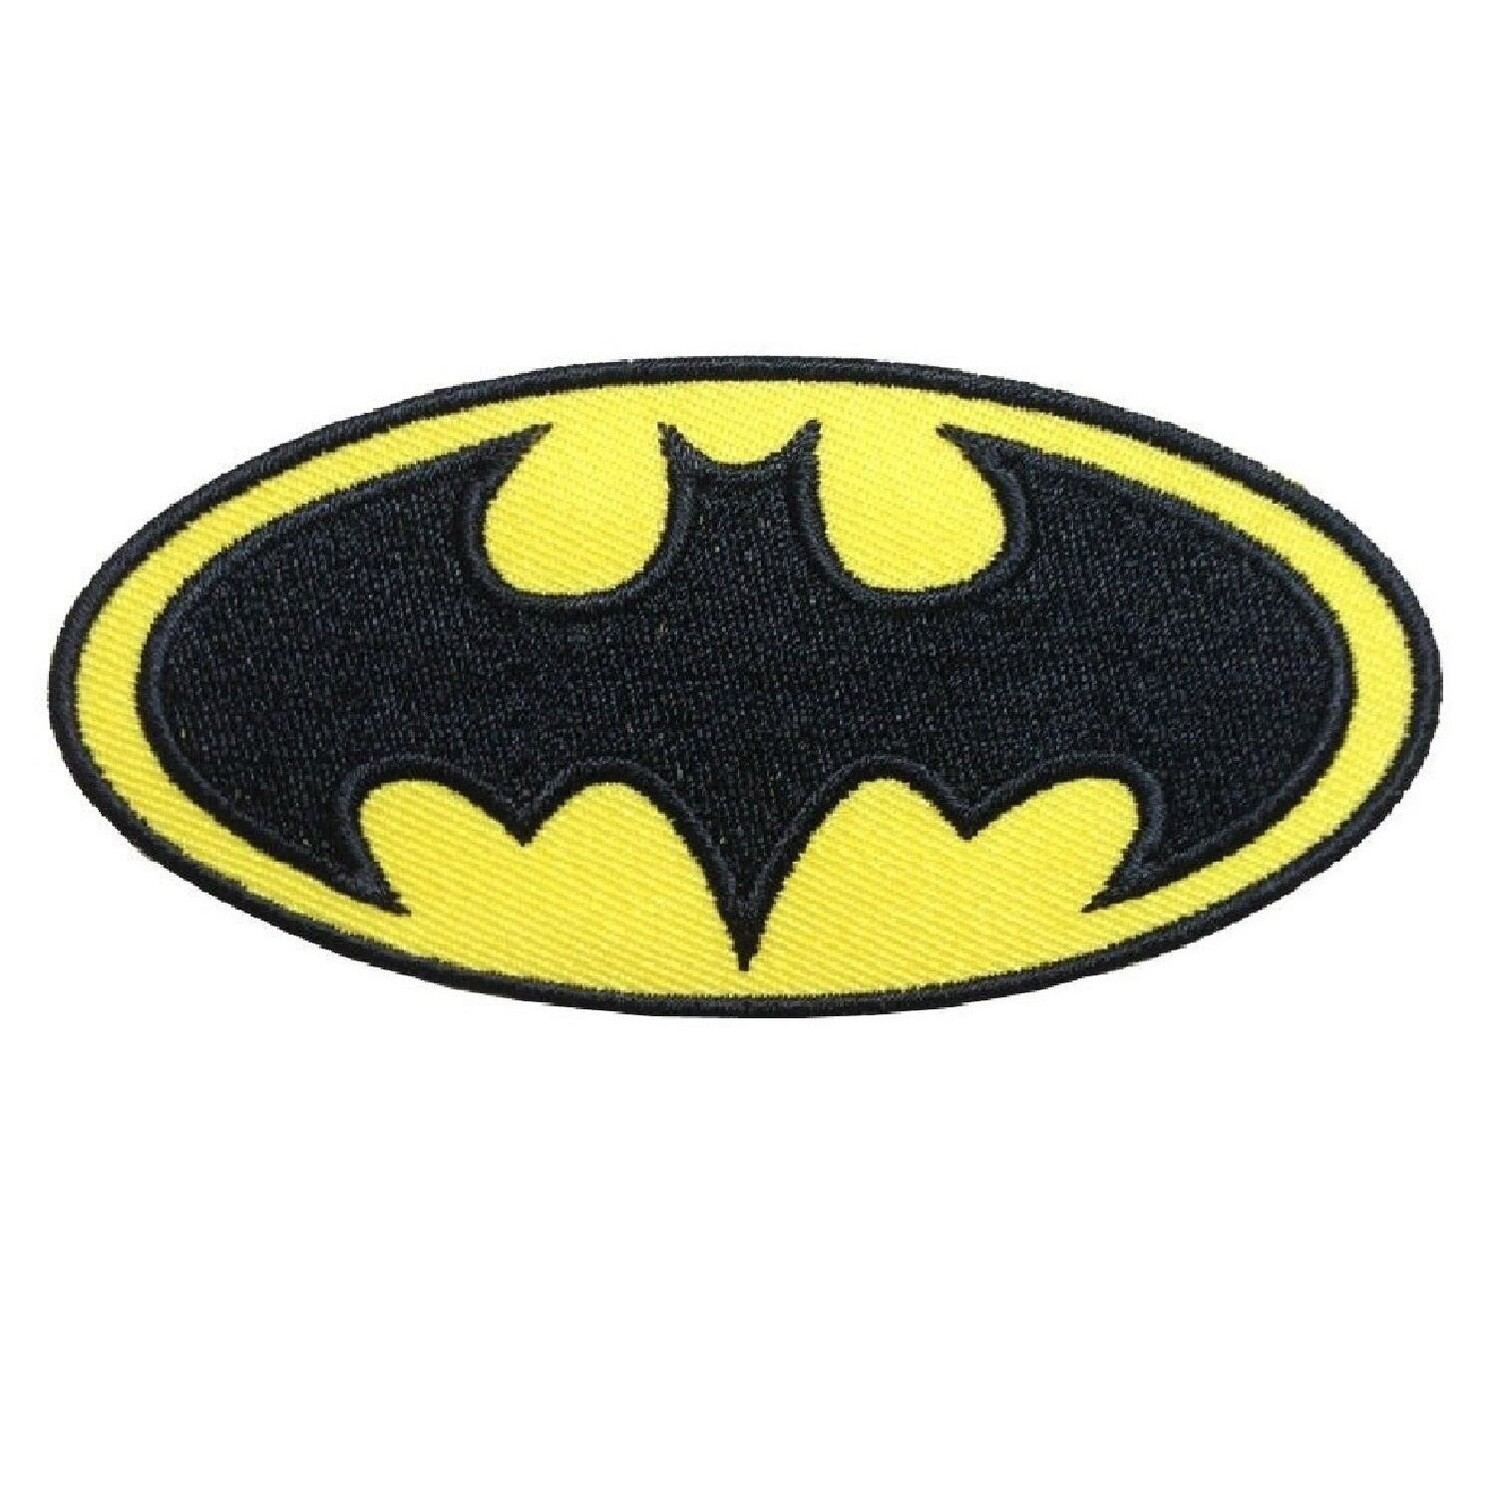 10 Toppe Patch termoadesive a tema Batman